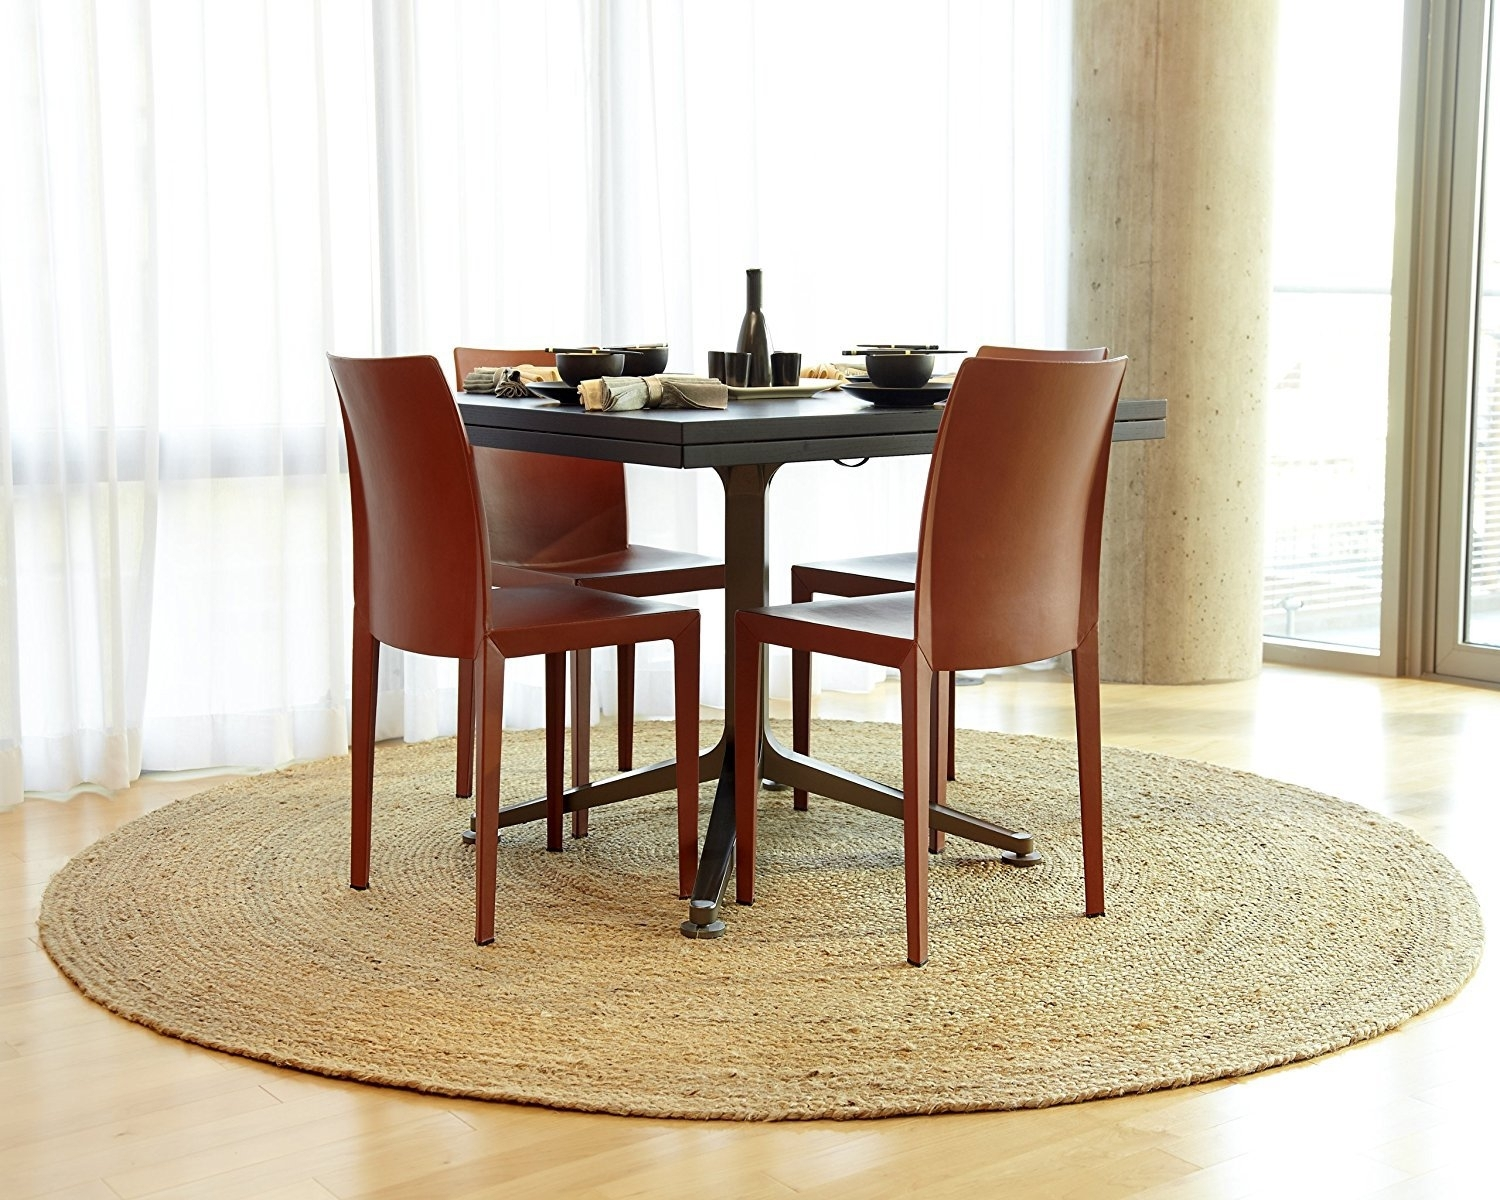 Gray Decor Round Seagrass Rug Room Design Casual Motif Seagrass Rug With Most Up To Date Caden Round Dining Tables (Image 12 of 20)